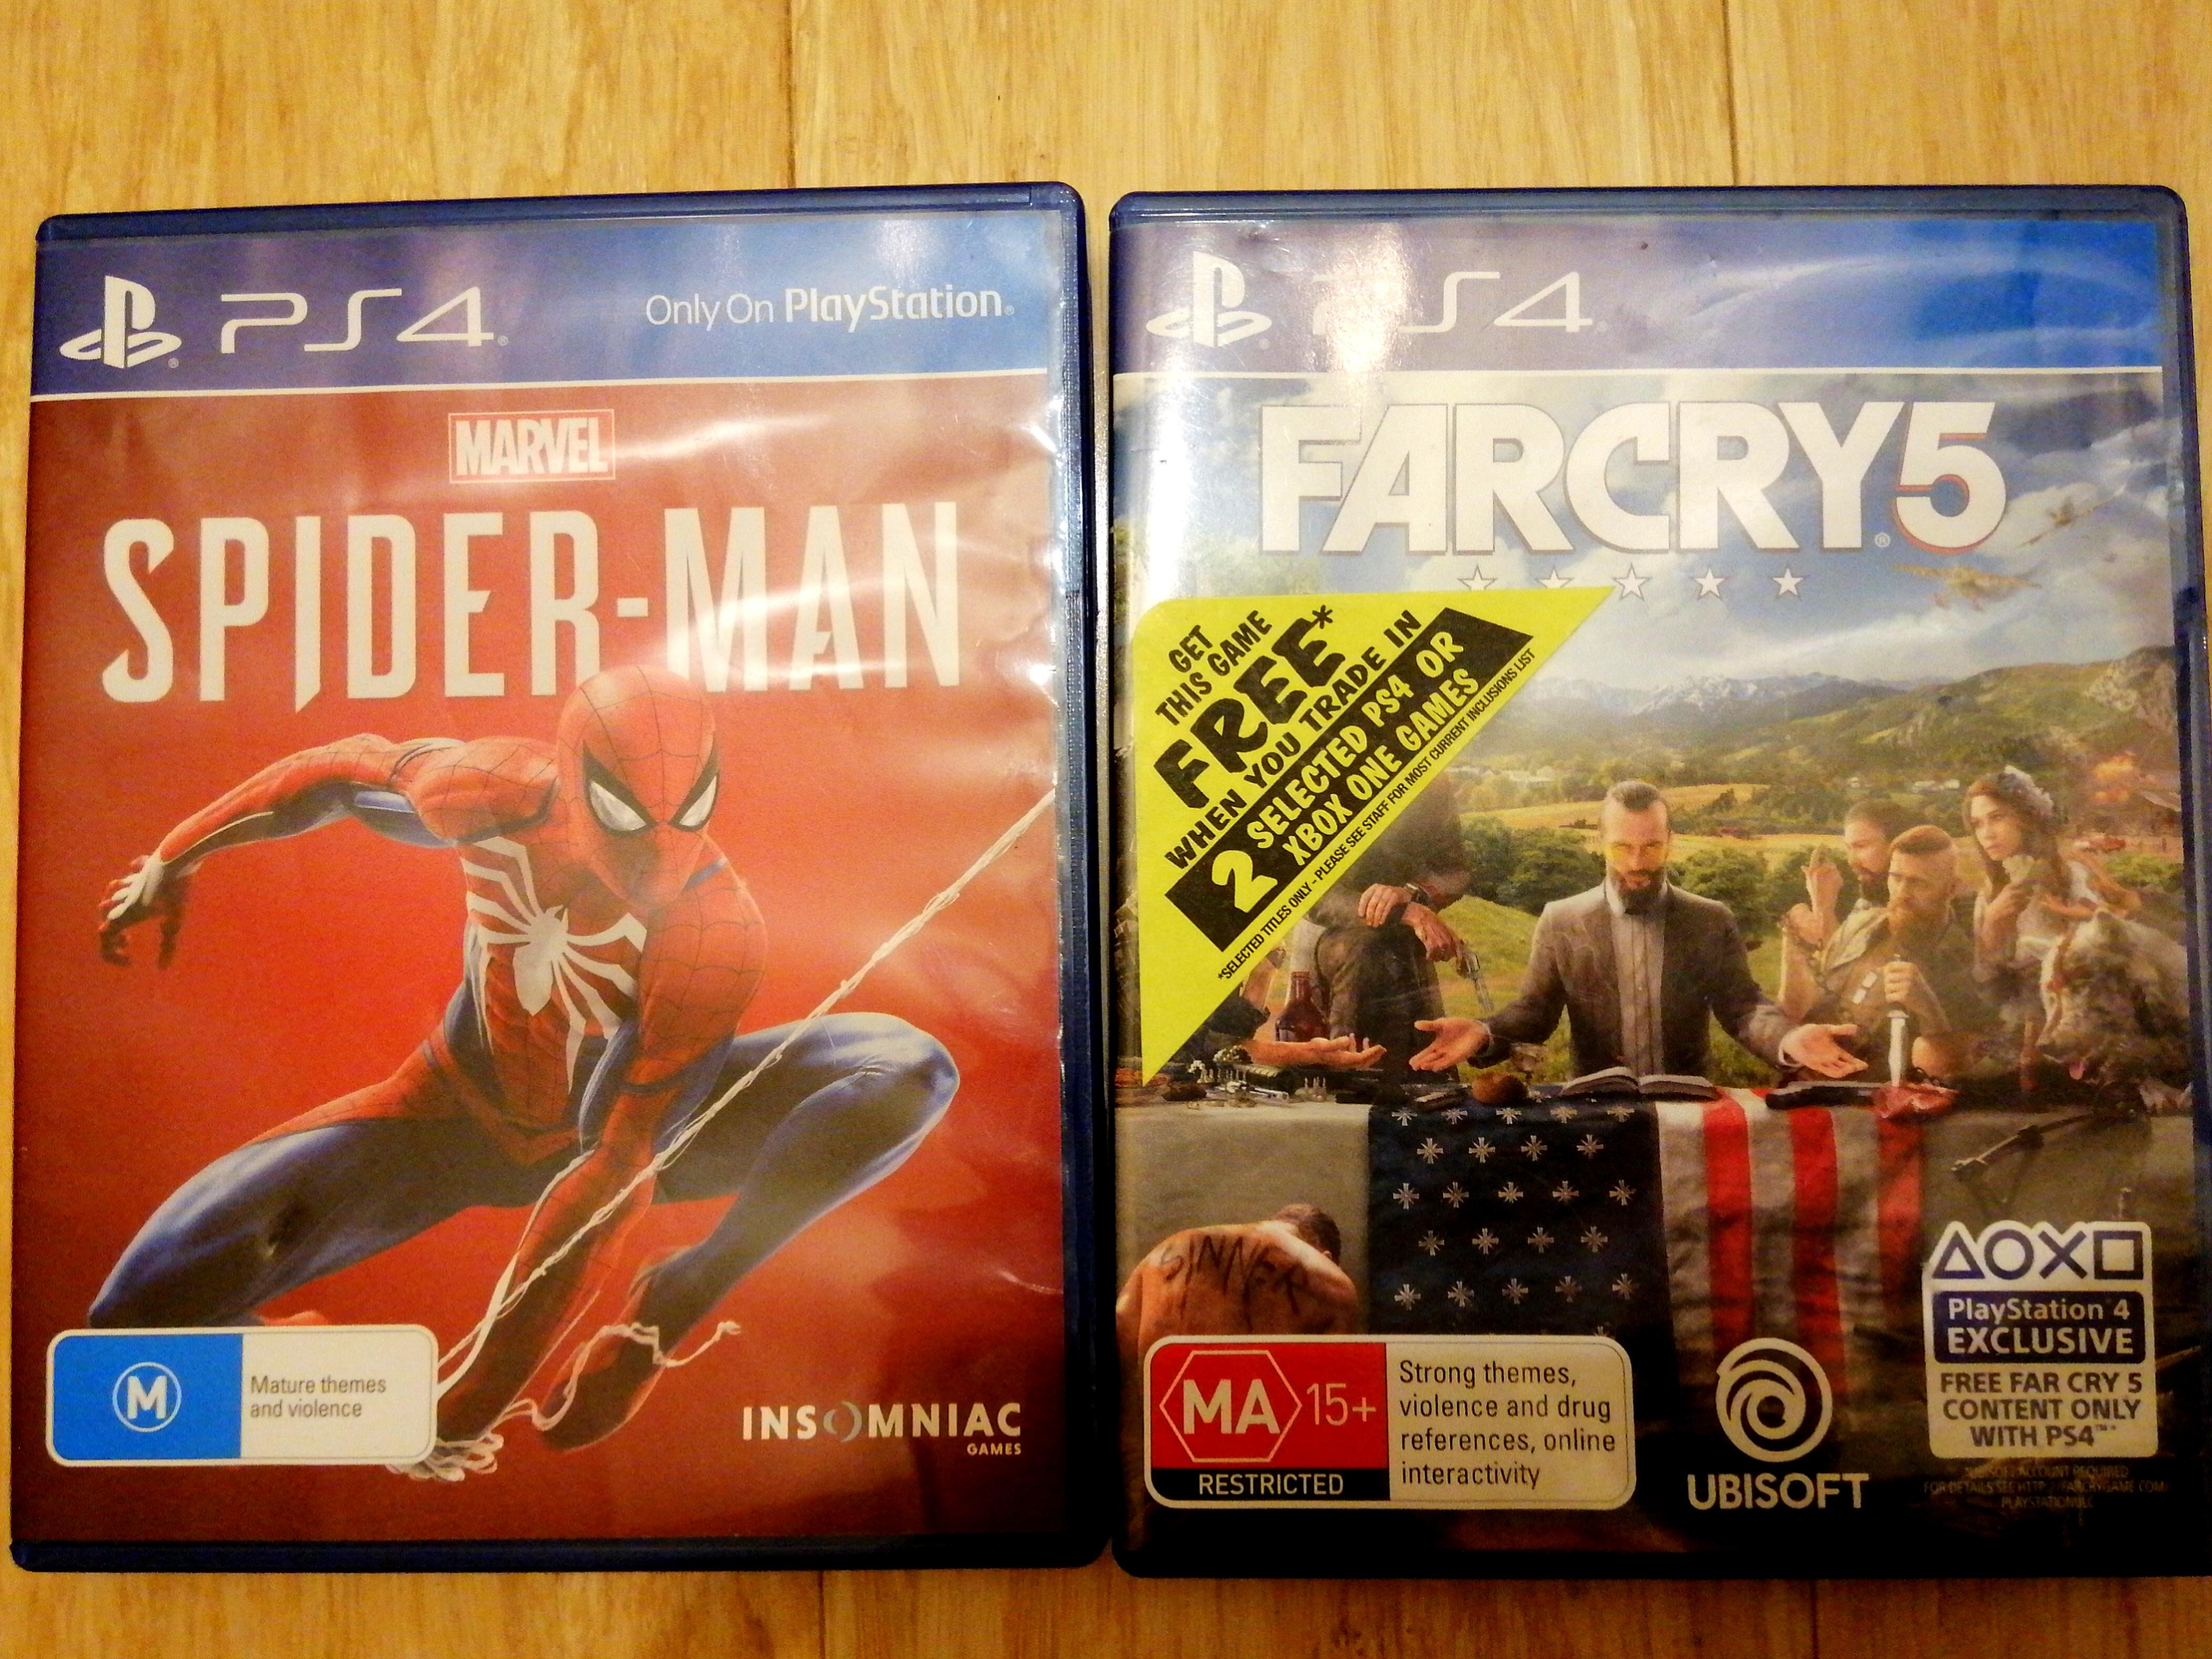 Spiderman PS4 and Farcry 5